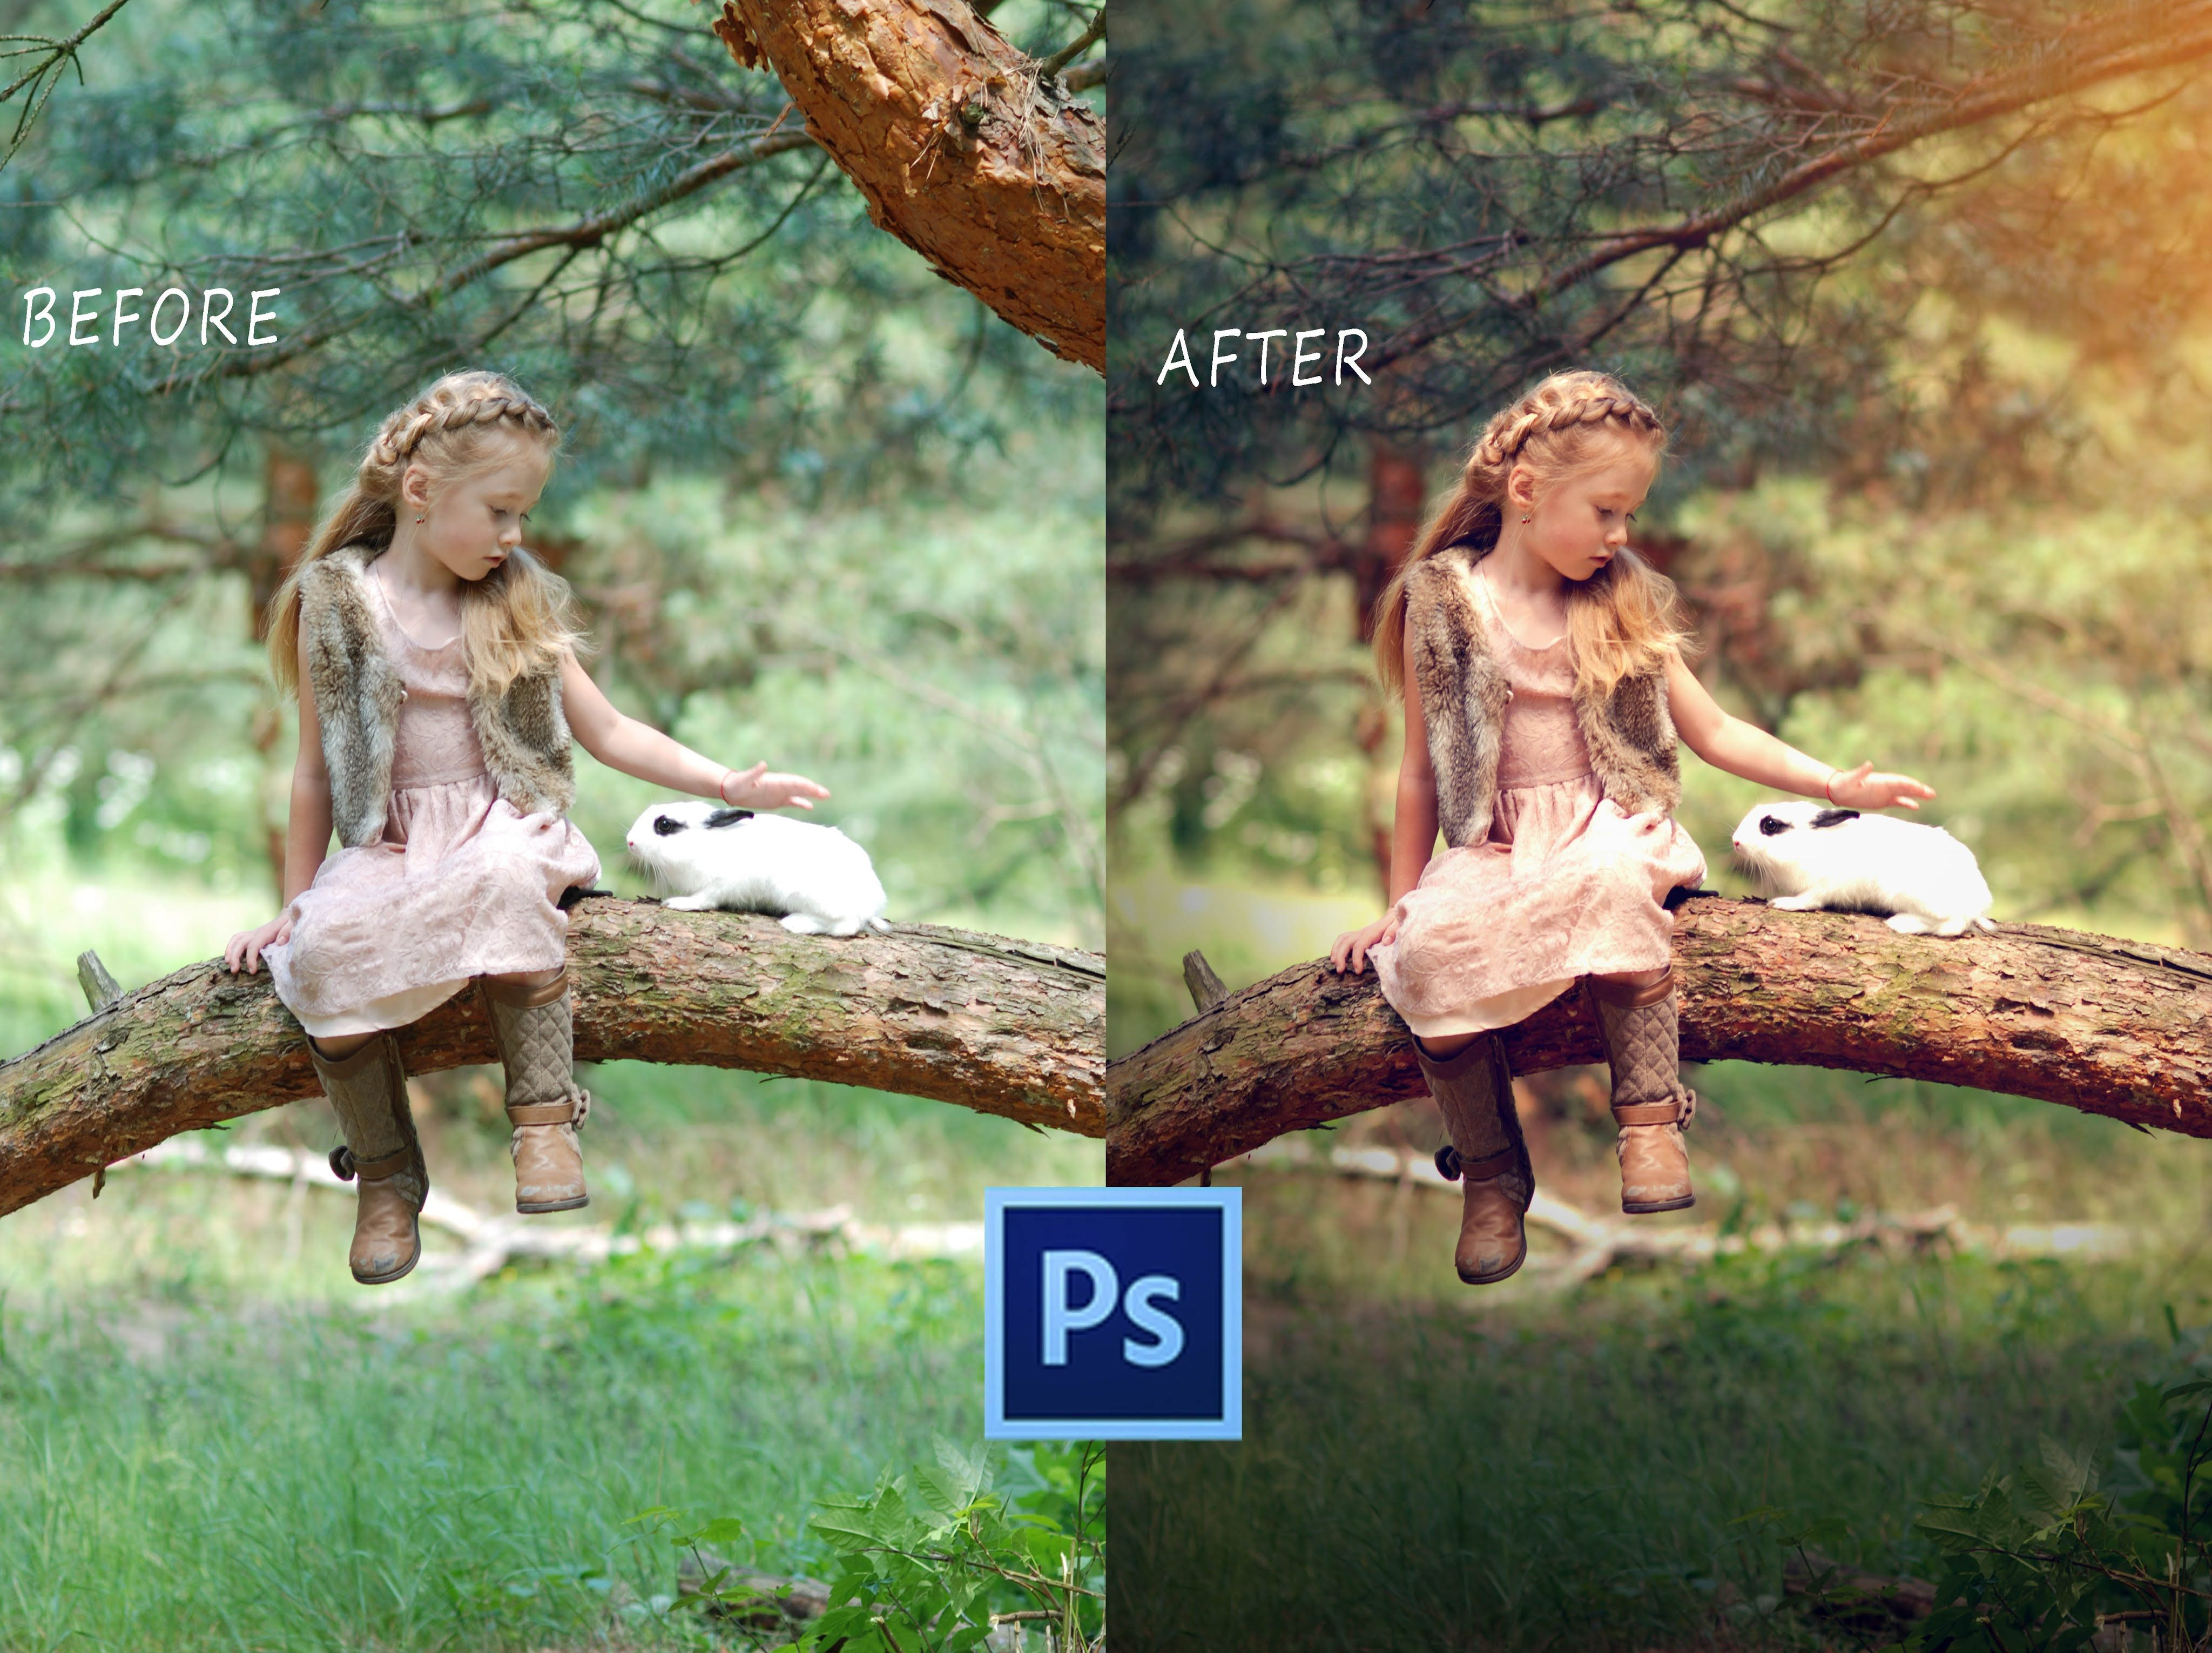 In This Tutorial I Am Going To Show You How To Edit Outdoor Portrait Photo Kids That How You Can Delet Photography Editing Photoshop Photos Portrait Photoshop